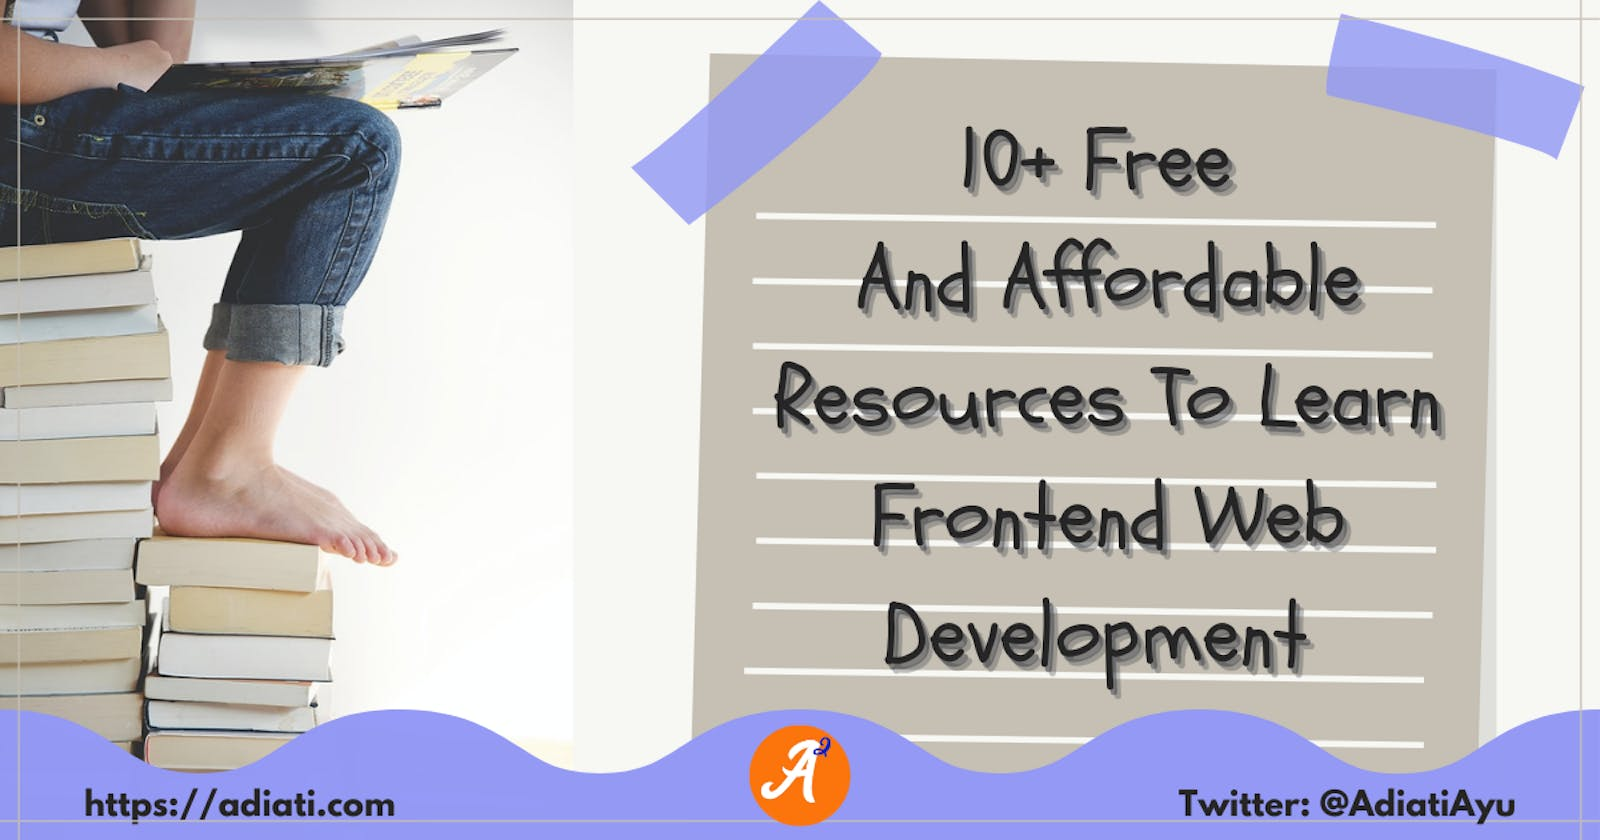 10+ Free And Affordable Resources To Learn Frontend Web Development